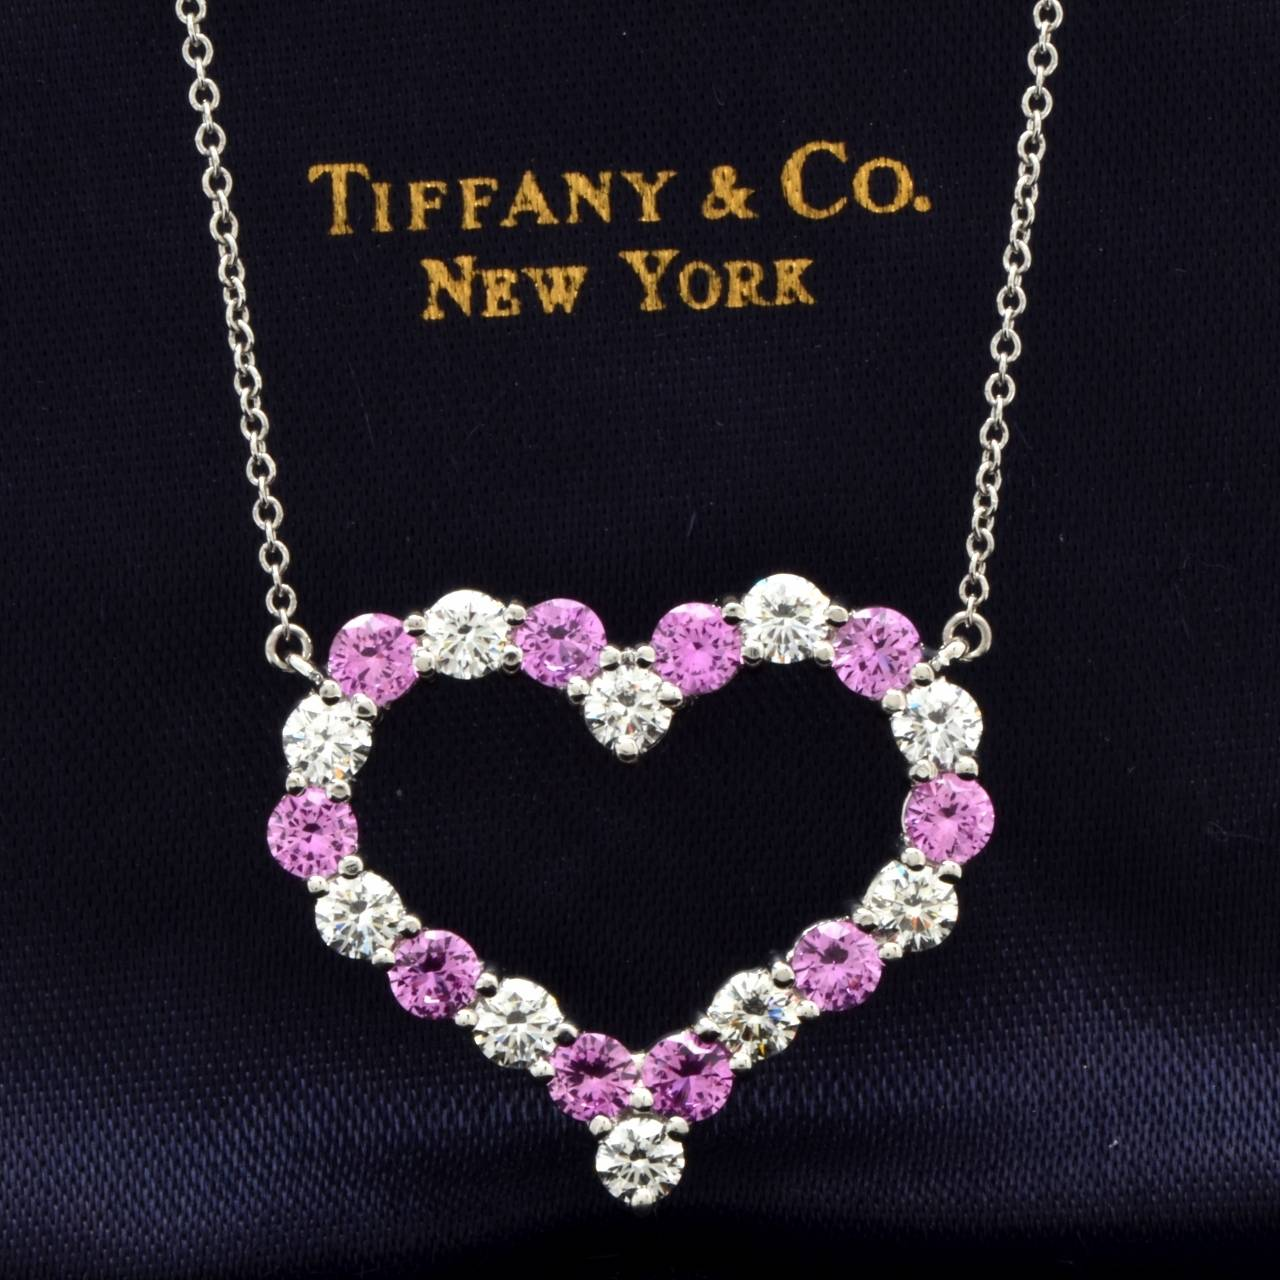 Tiffany and co diamond pink sapphire heart pendant platinum diamond pink sapphire heart pendant platinum necklace at 1stdibs aloadofball Image collections